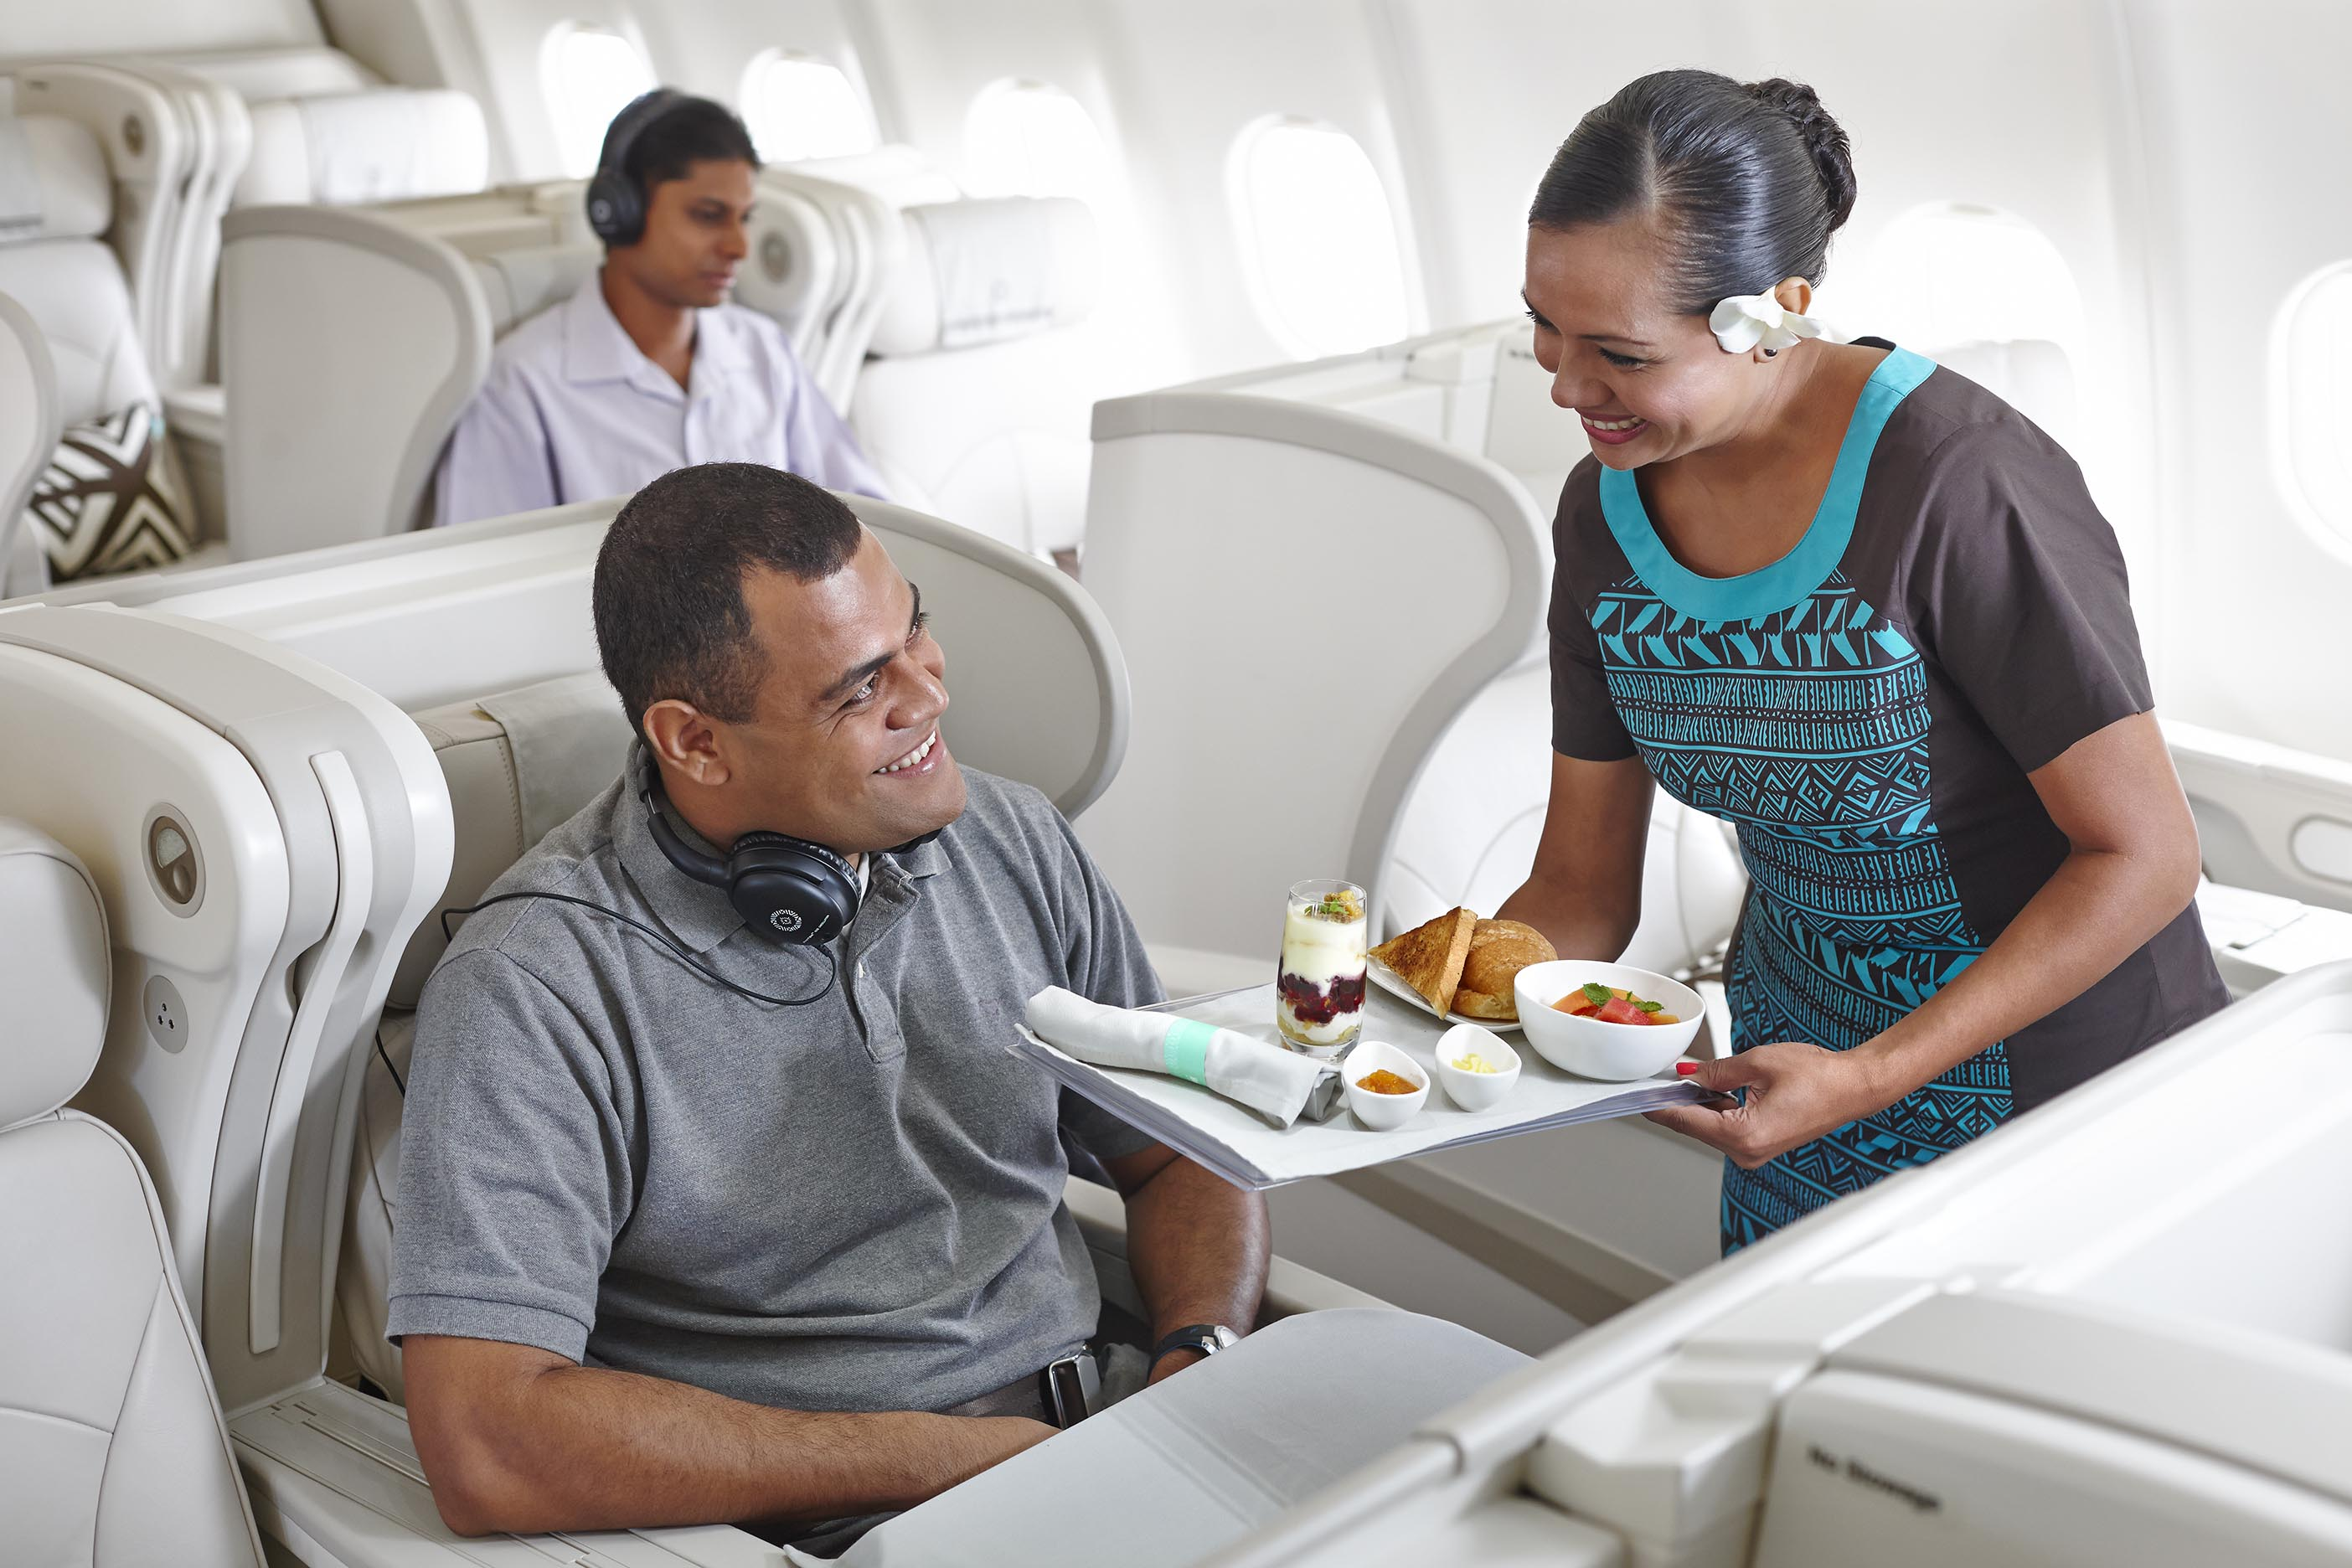 Image from Fiji Airways